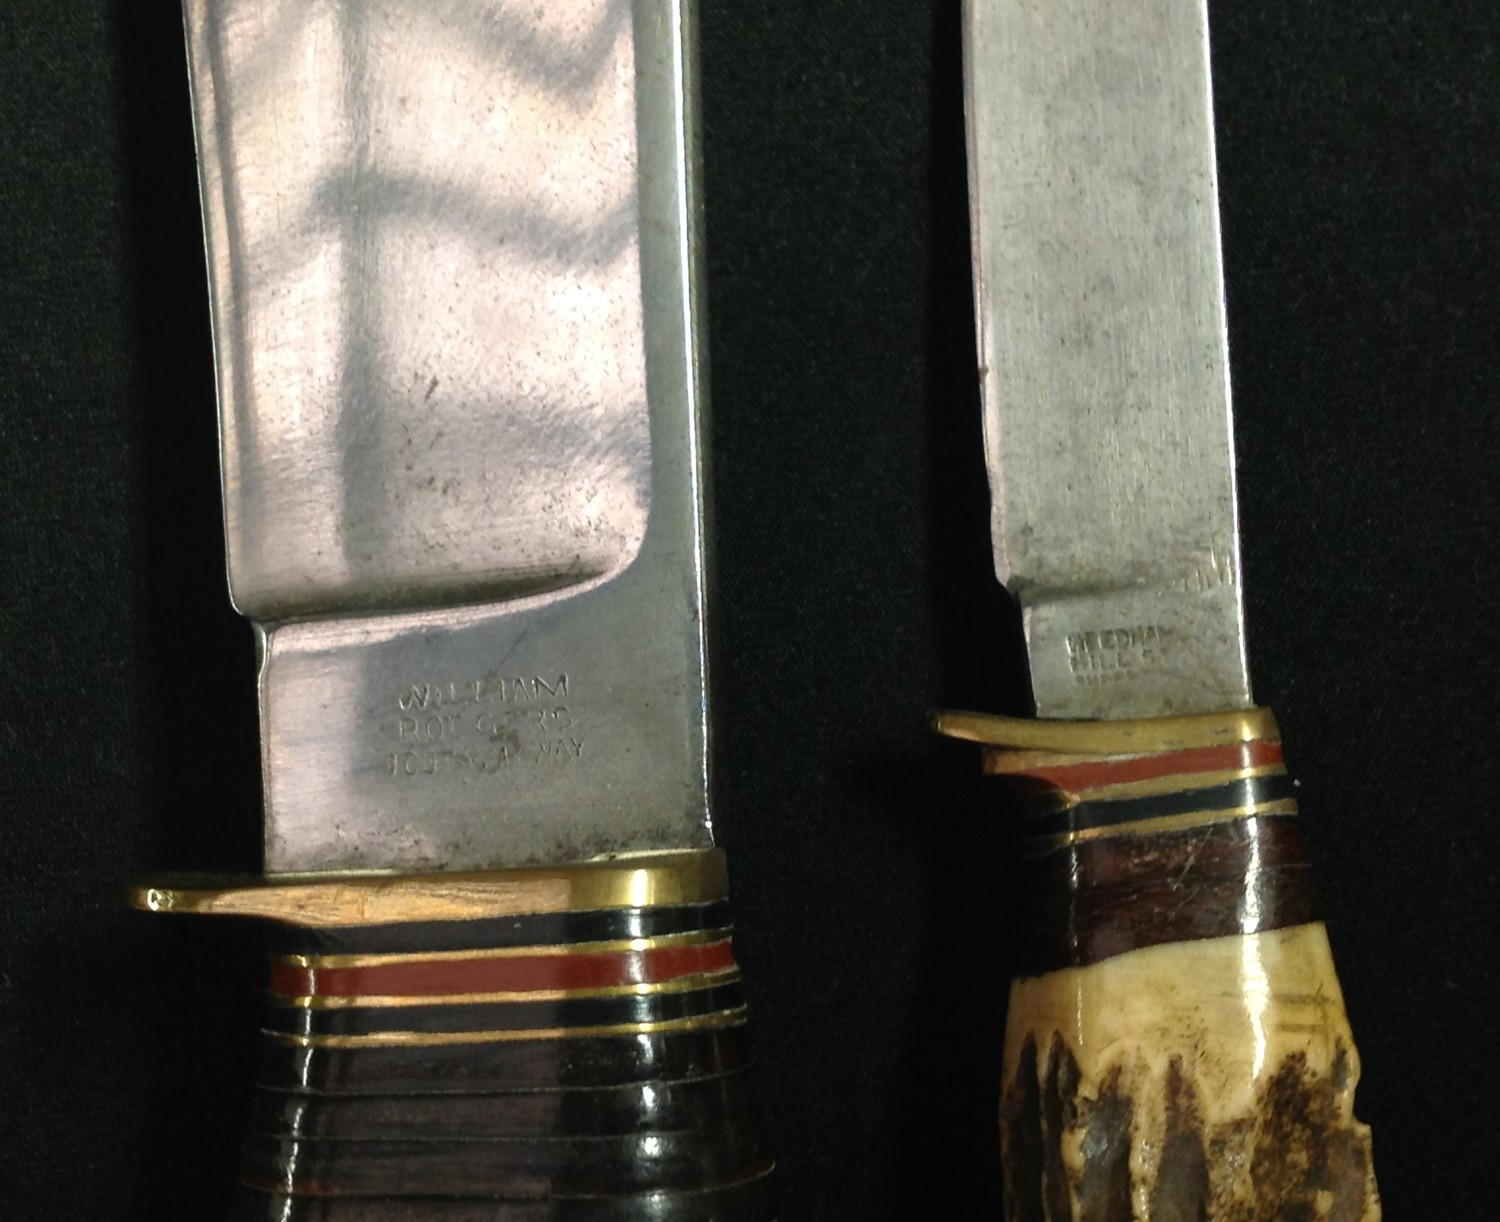 """Hunting Knife with Bowie style blade with fuller 199mm in length maker marked """"William Rodgers I Cut - Image 4 of 5"""